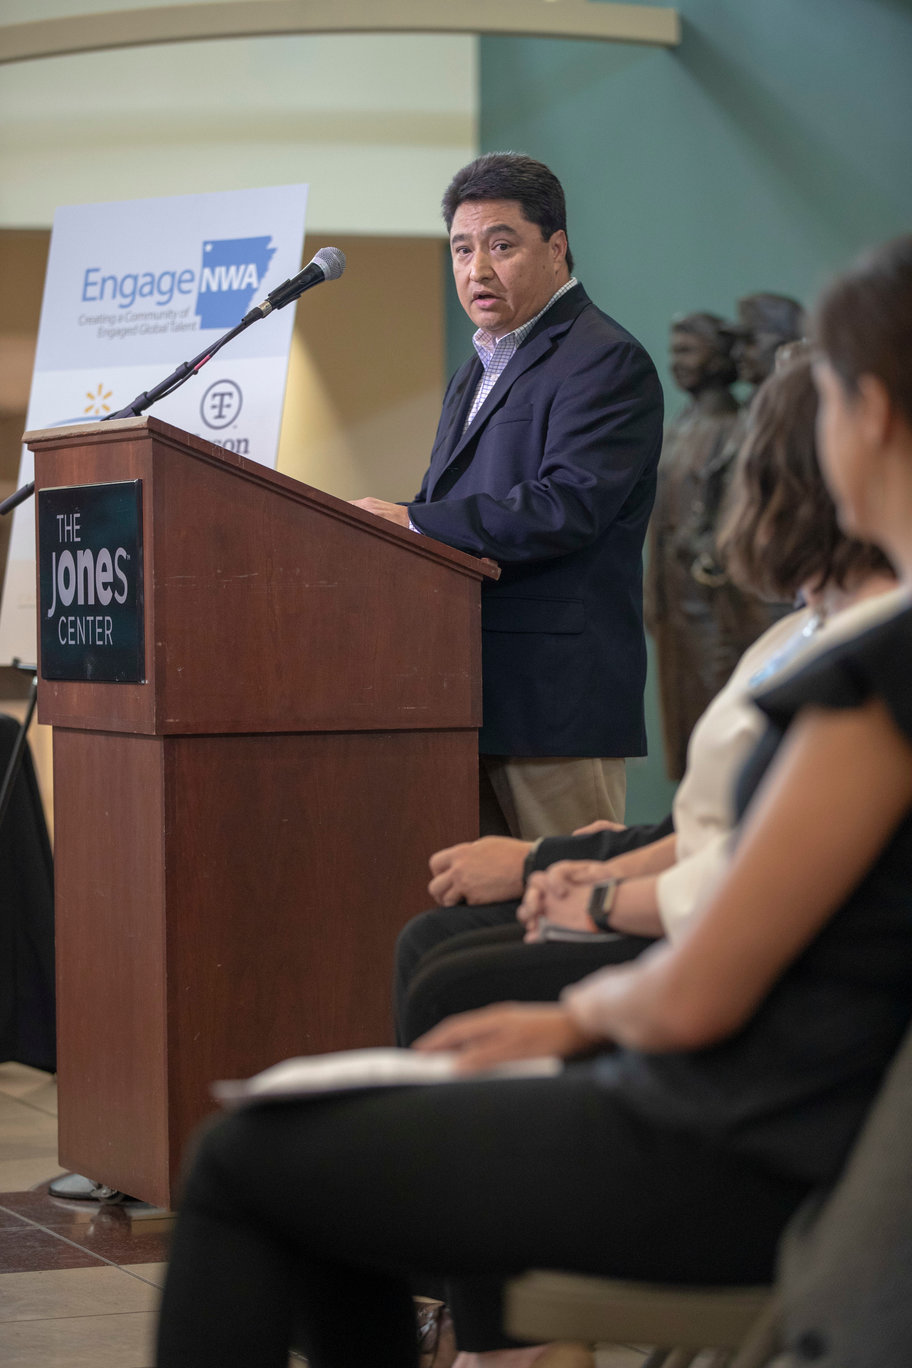 Hector Gonzalez, a Tyson Foods vice president of human resources, spoke at the July event where the EngageNWA Strategic Plan was made public.